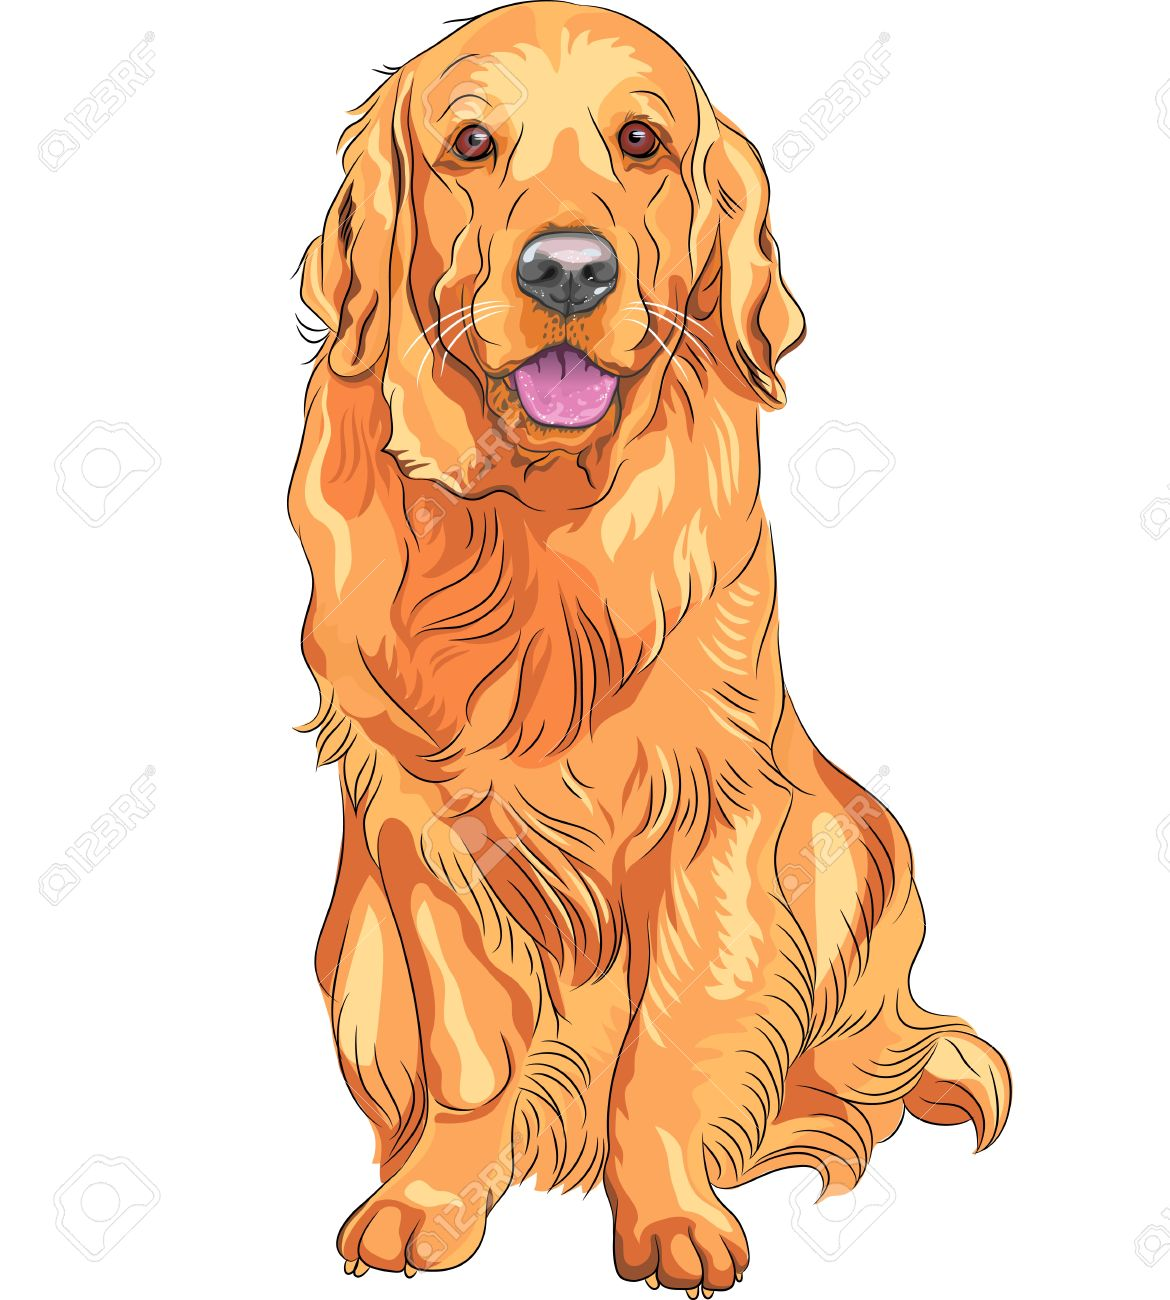 Retriever clipart #15, Download drawings